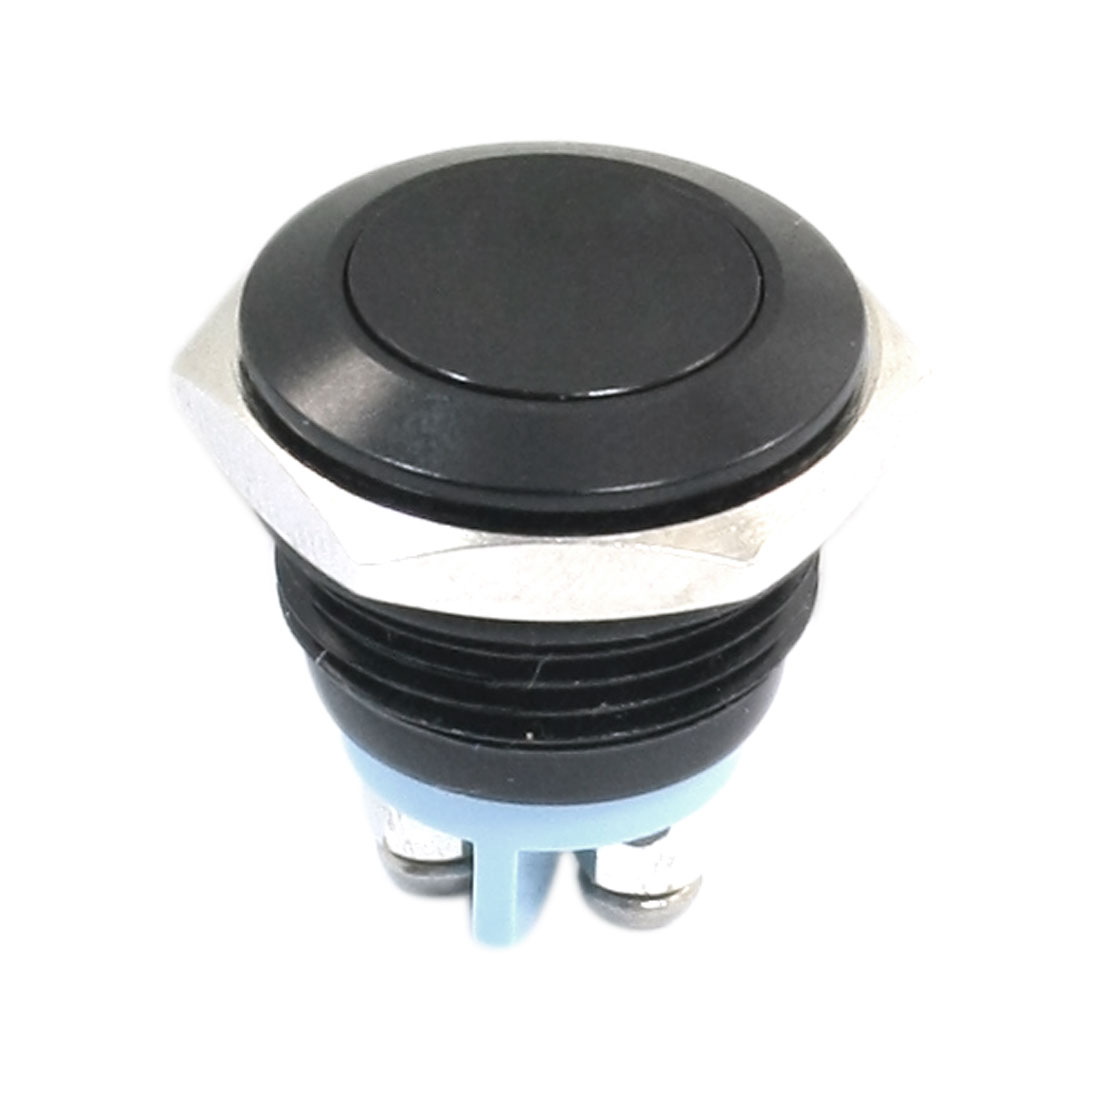 16mm Mounting Dia Momentary SPST Black Flat Head Push Button Switch